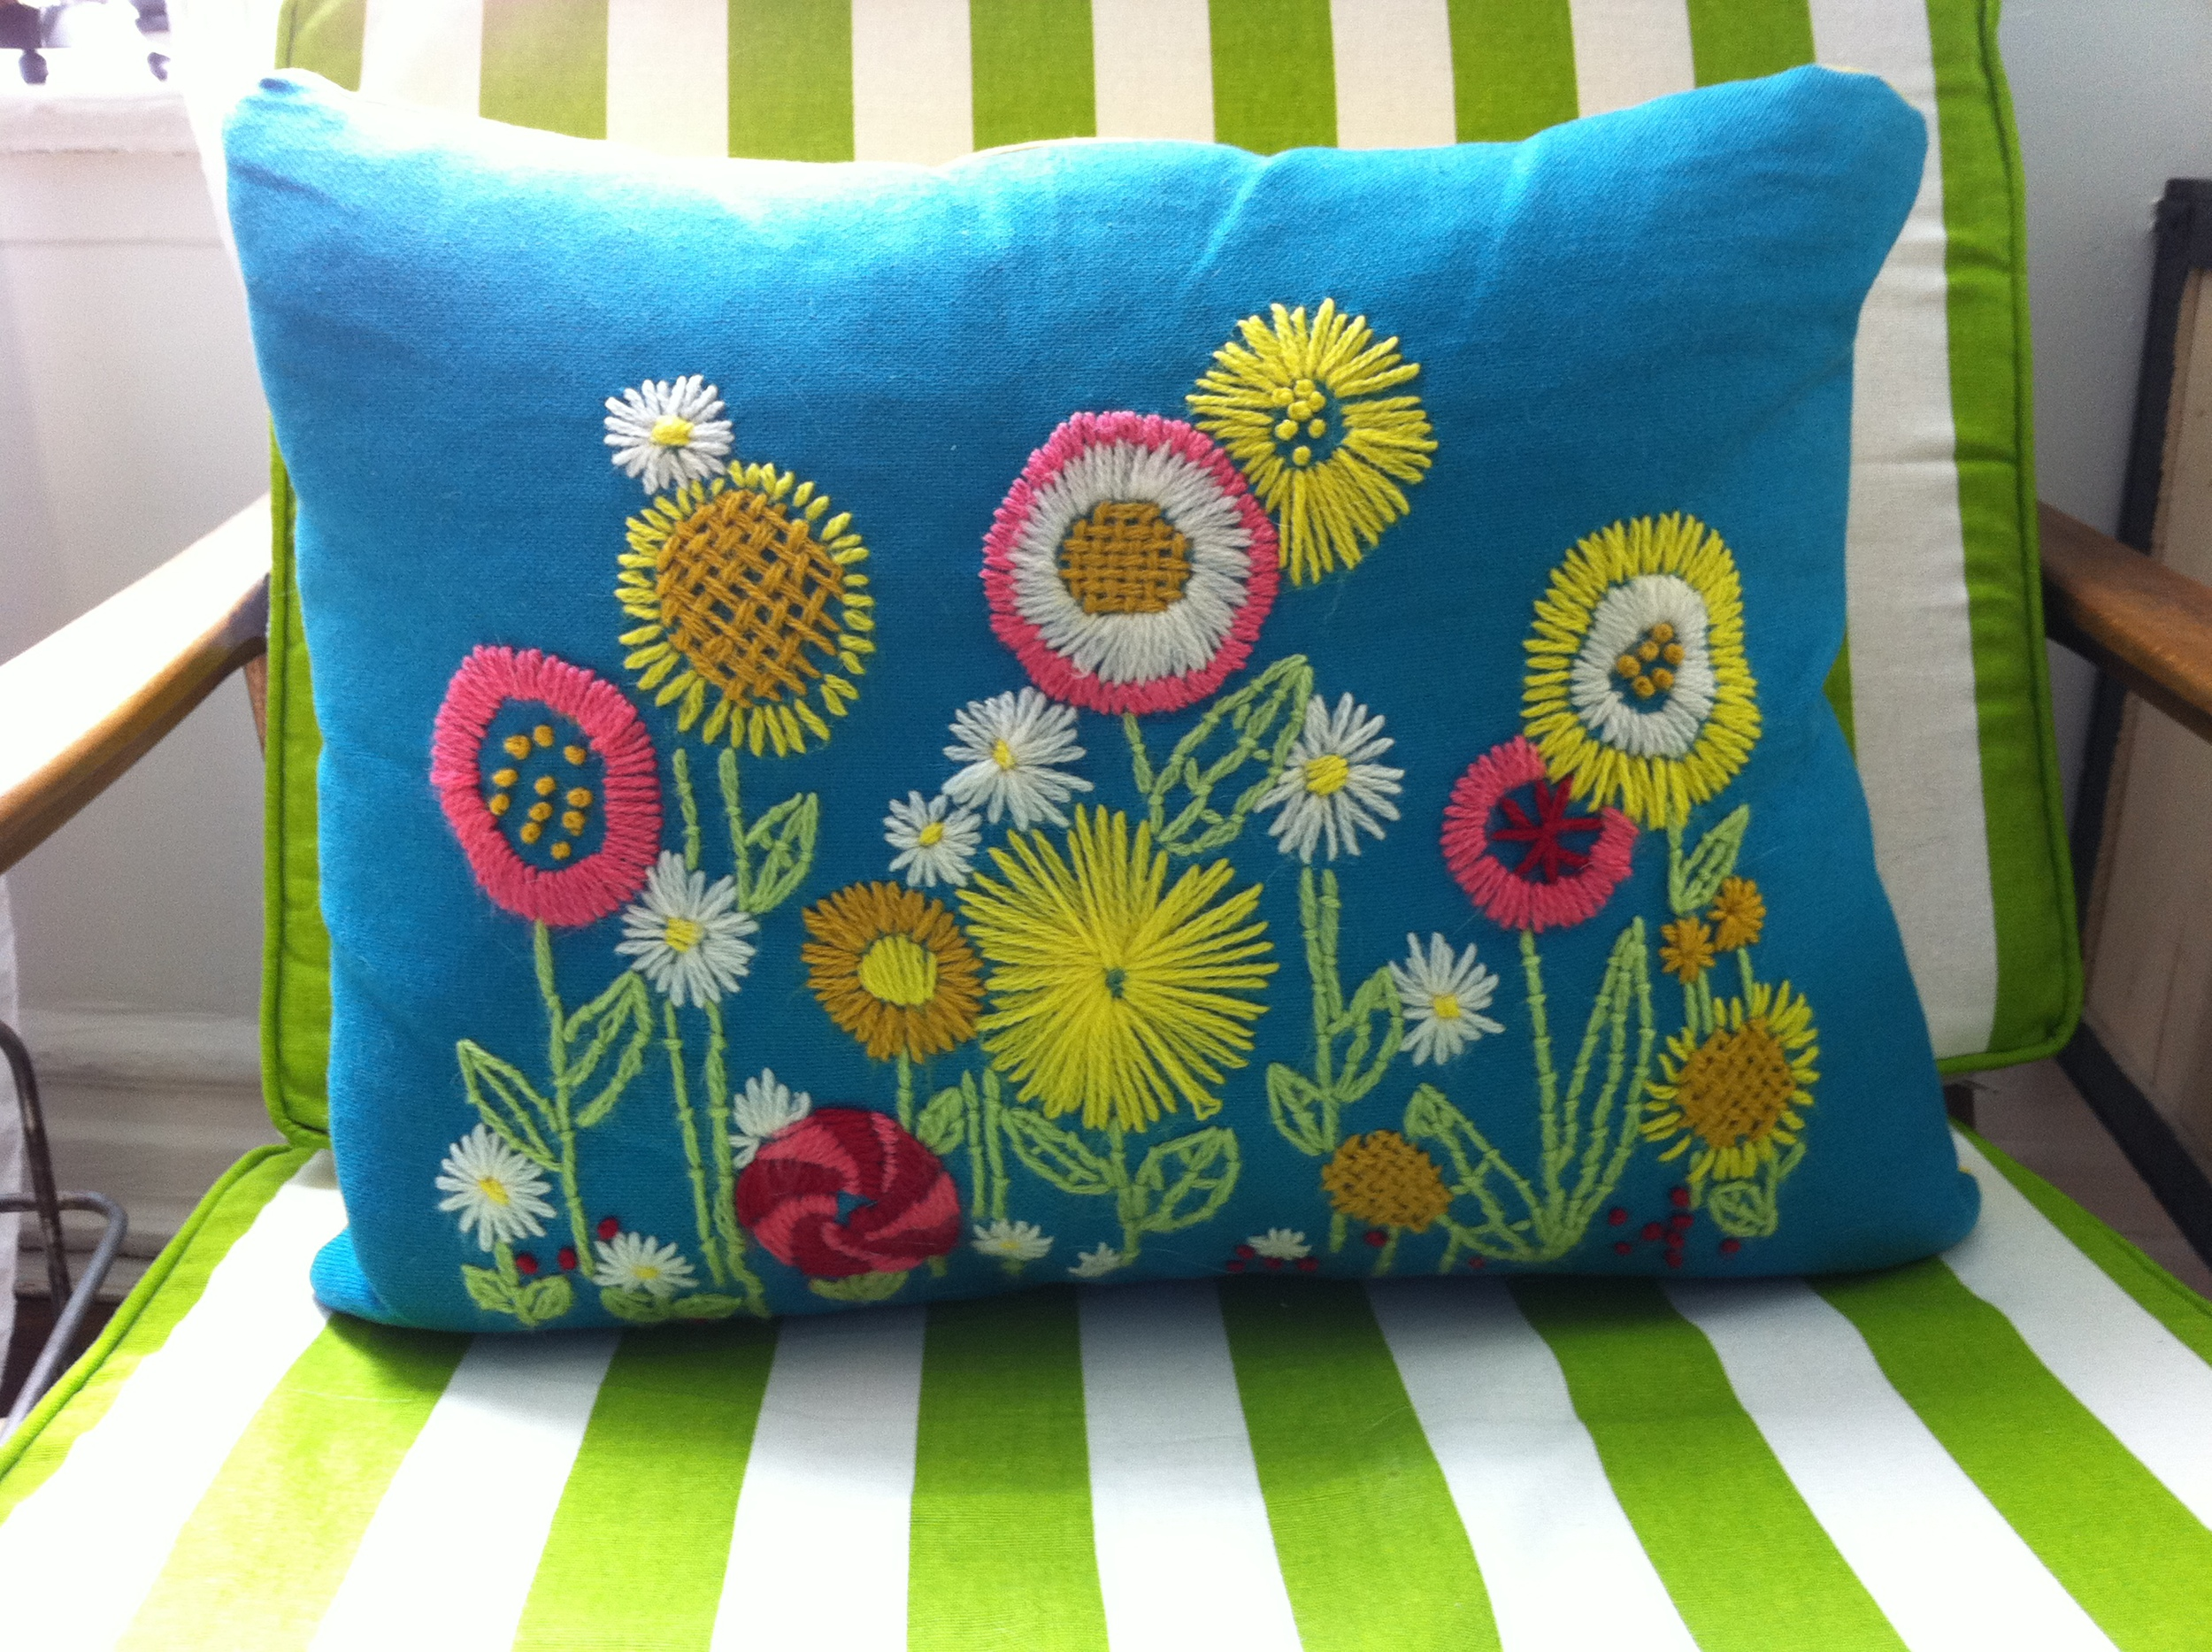 Amazing pink, yellow and red floral yarn art pillow on a green striped chair